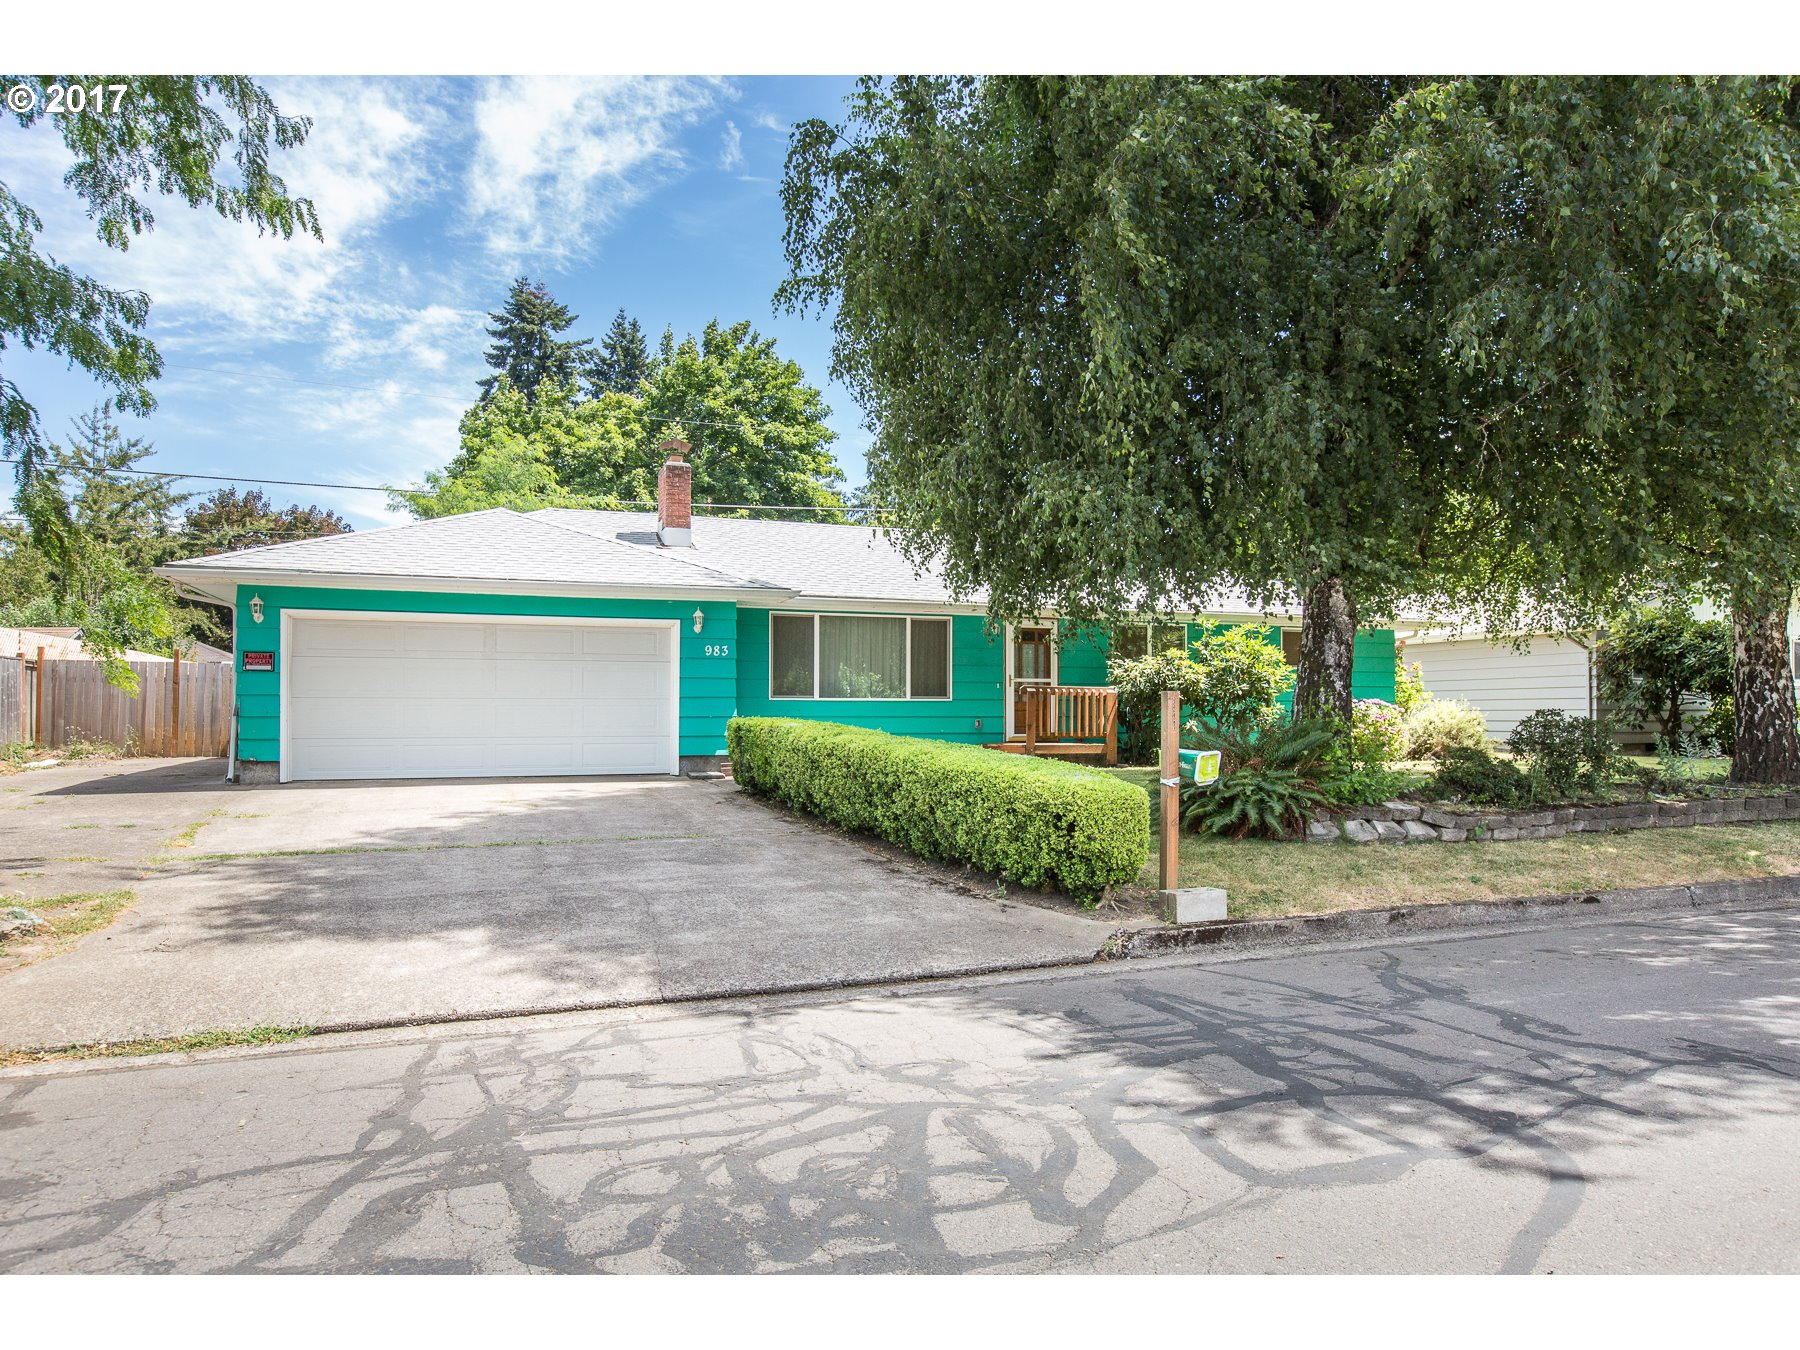 983 S 40TH PL, Springfield OR 97478